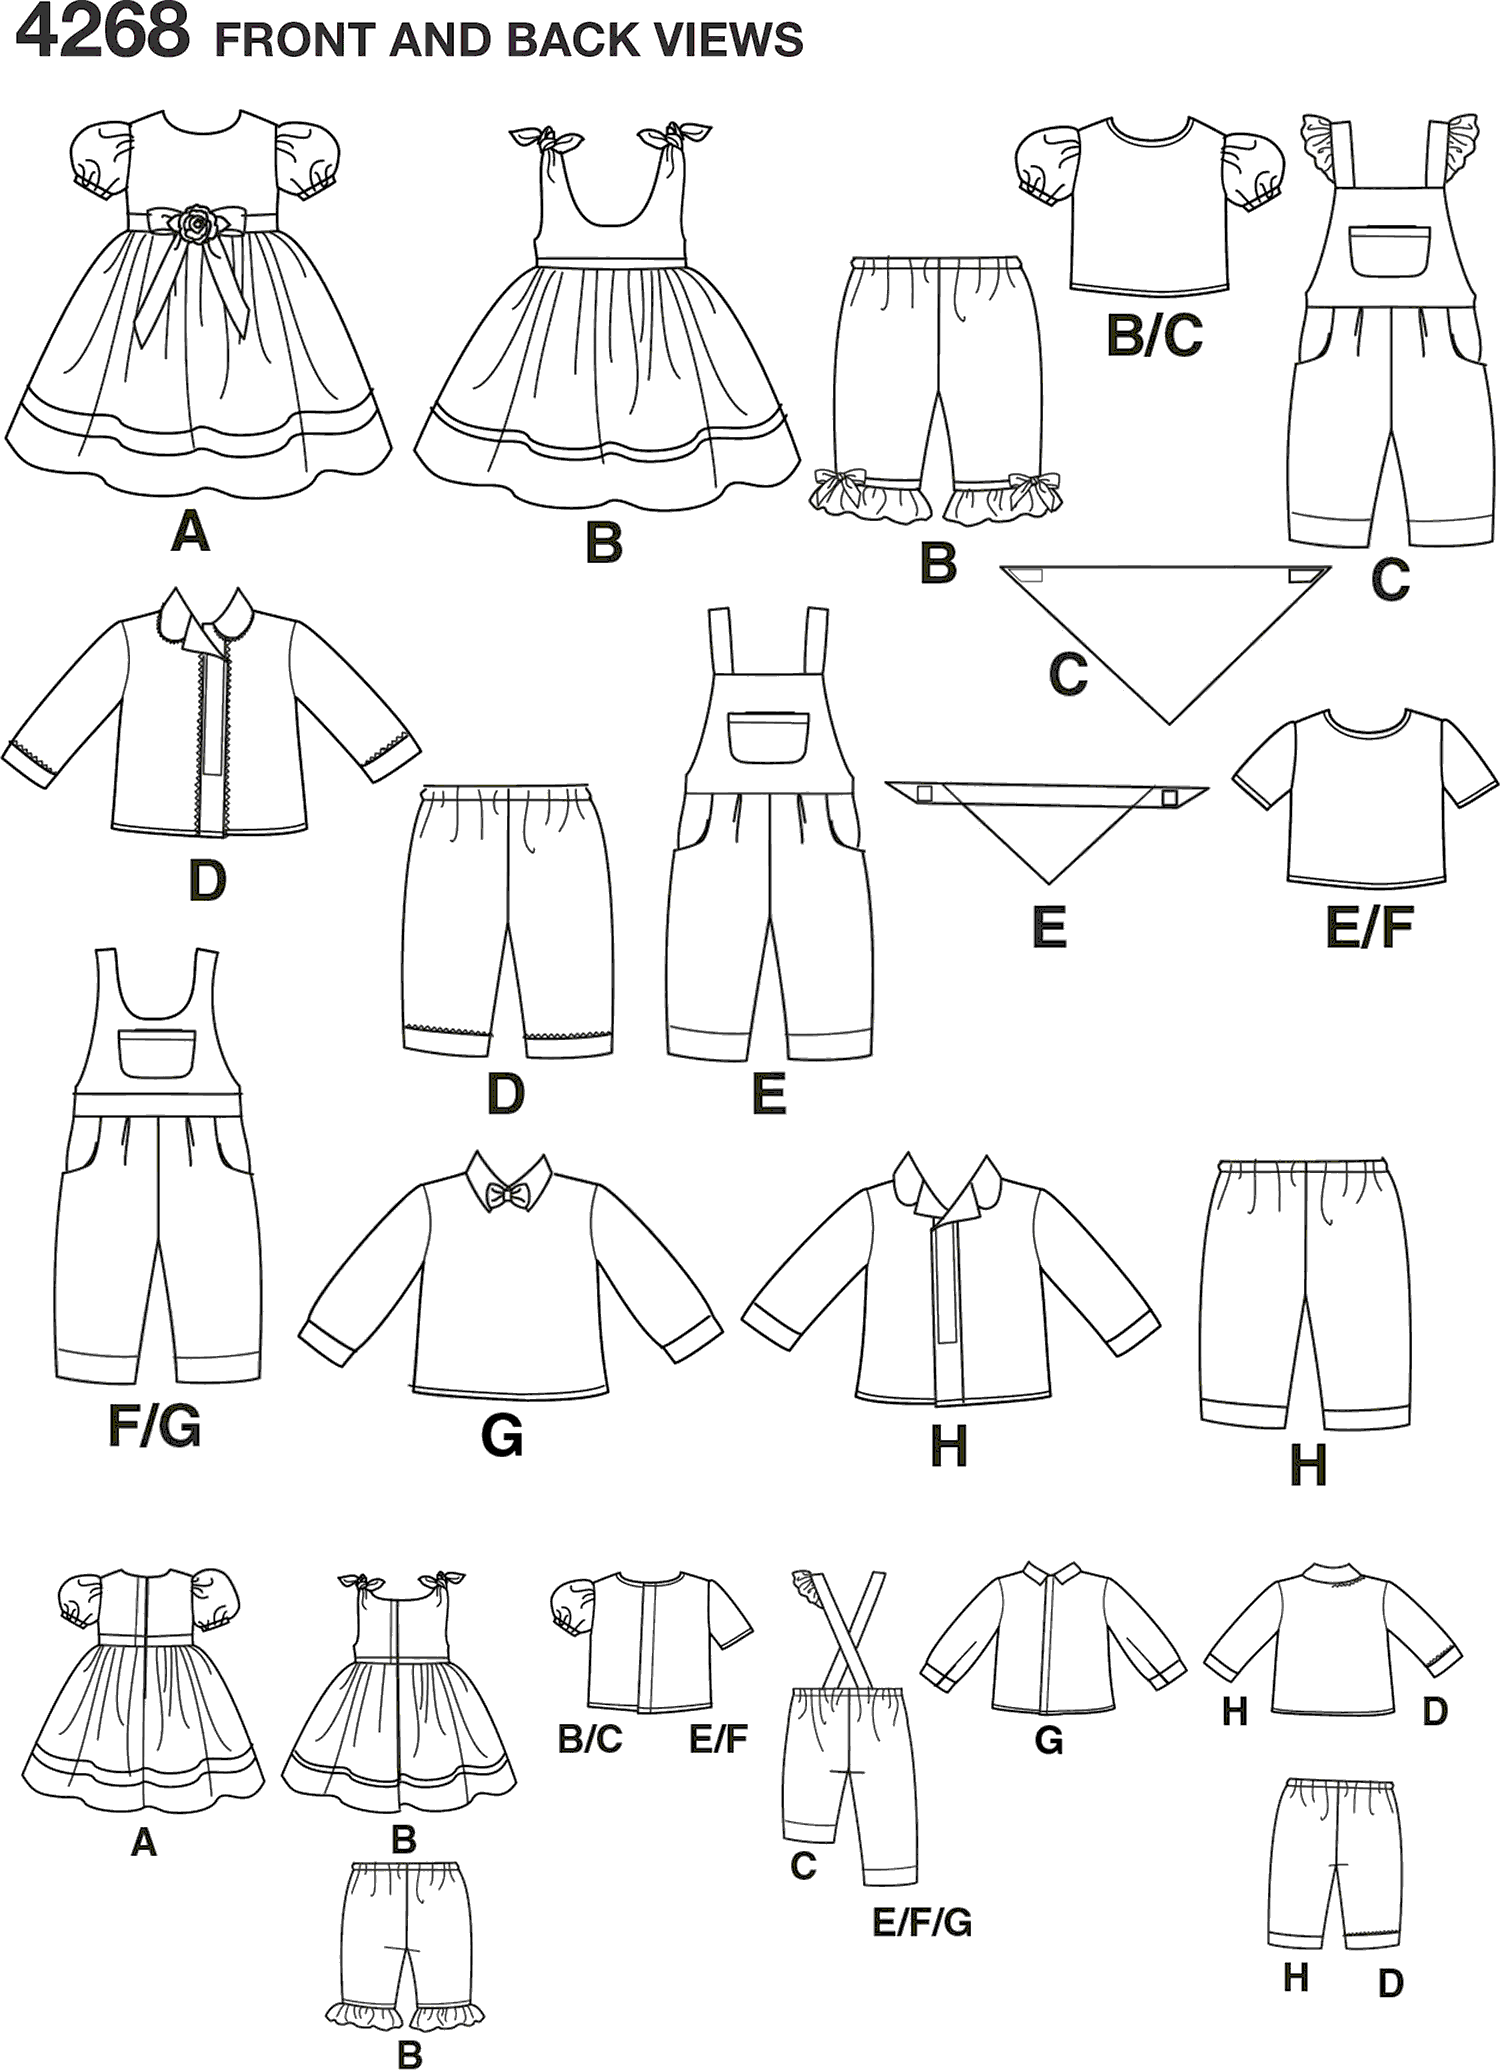 Simplicity Pattern 4268 Doll Clothes Line Art From Patternsandplains.com